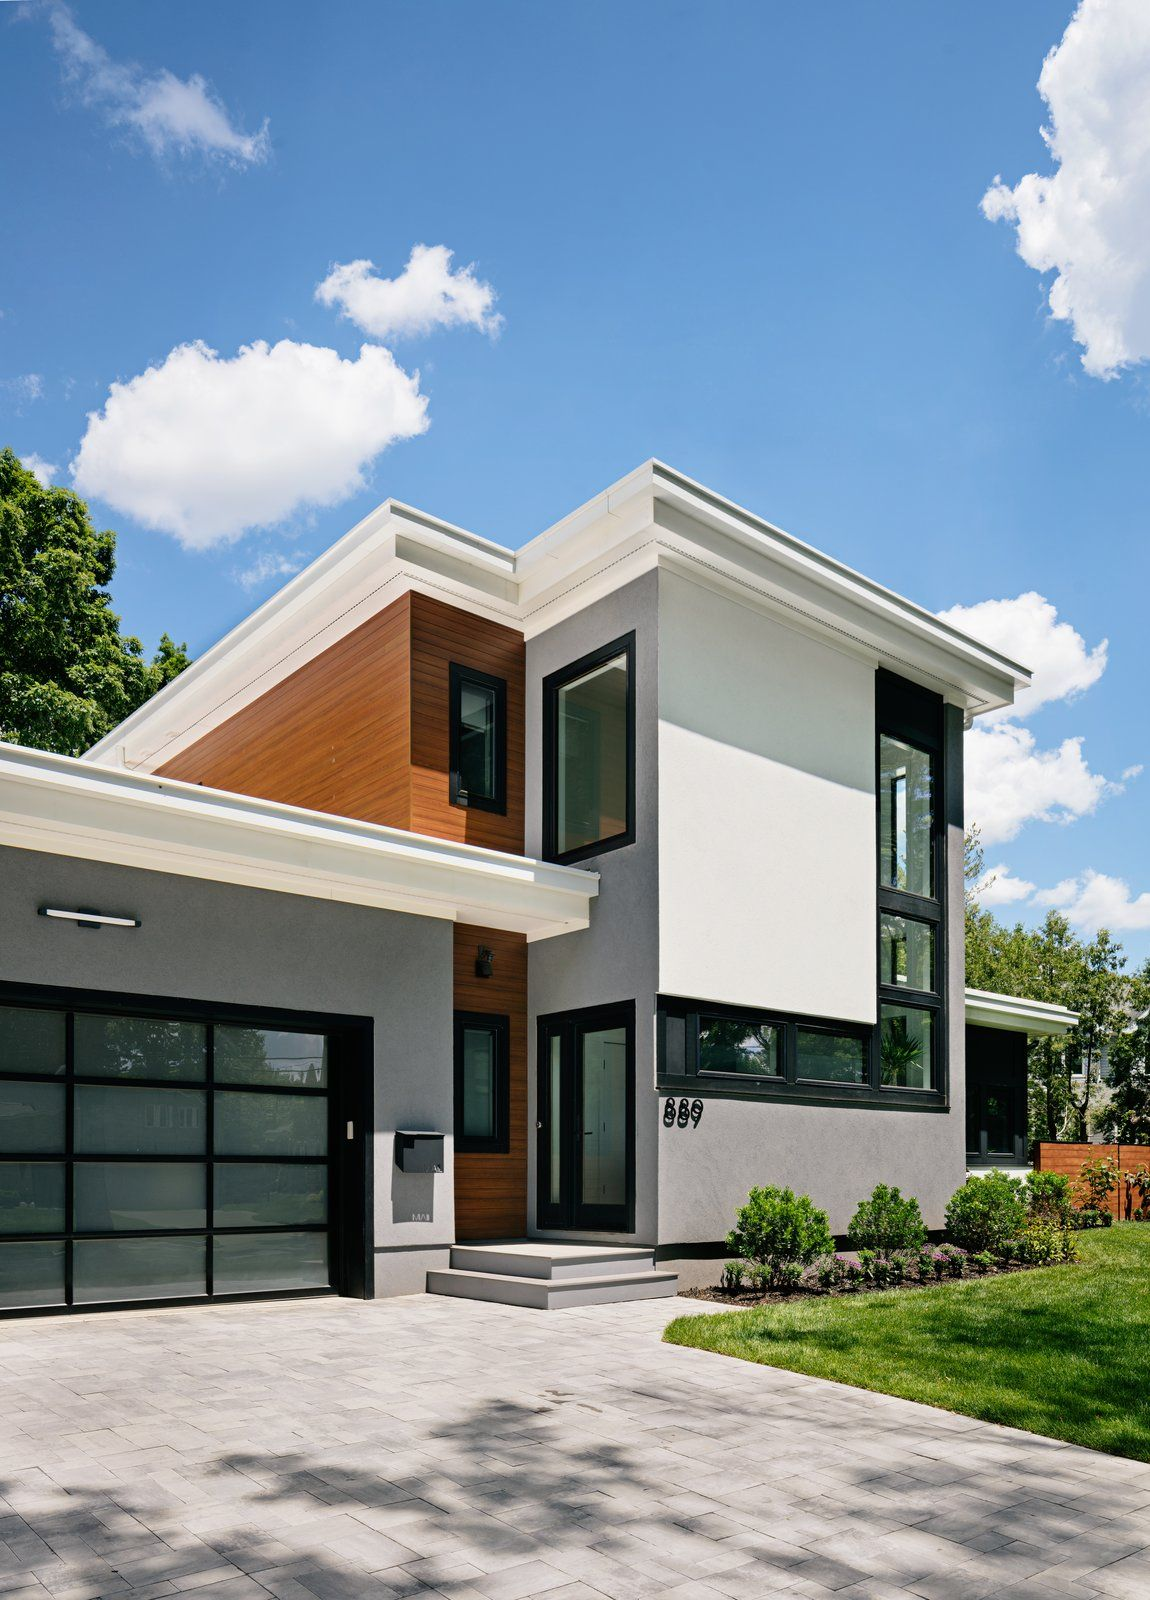 Modern House Exterior Materials: Modern Home With Exterior, House, Metal Siding Material